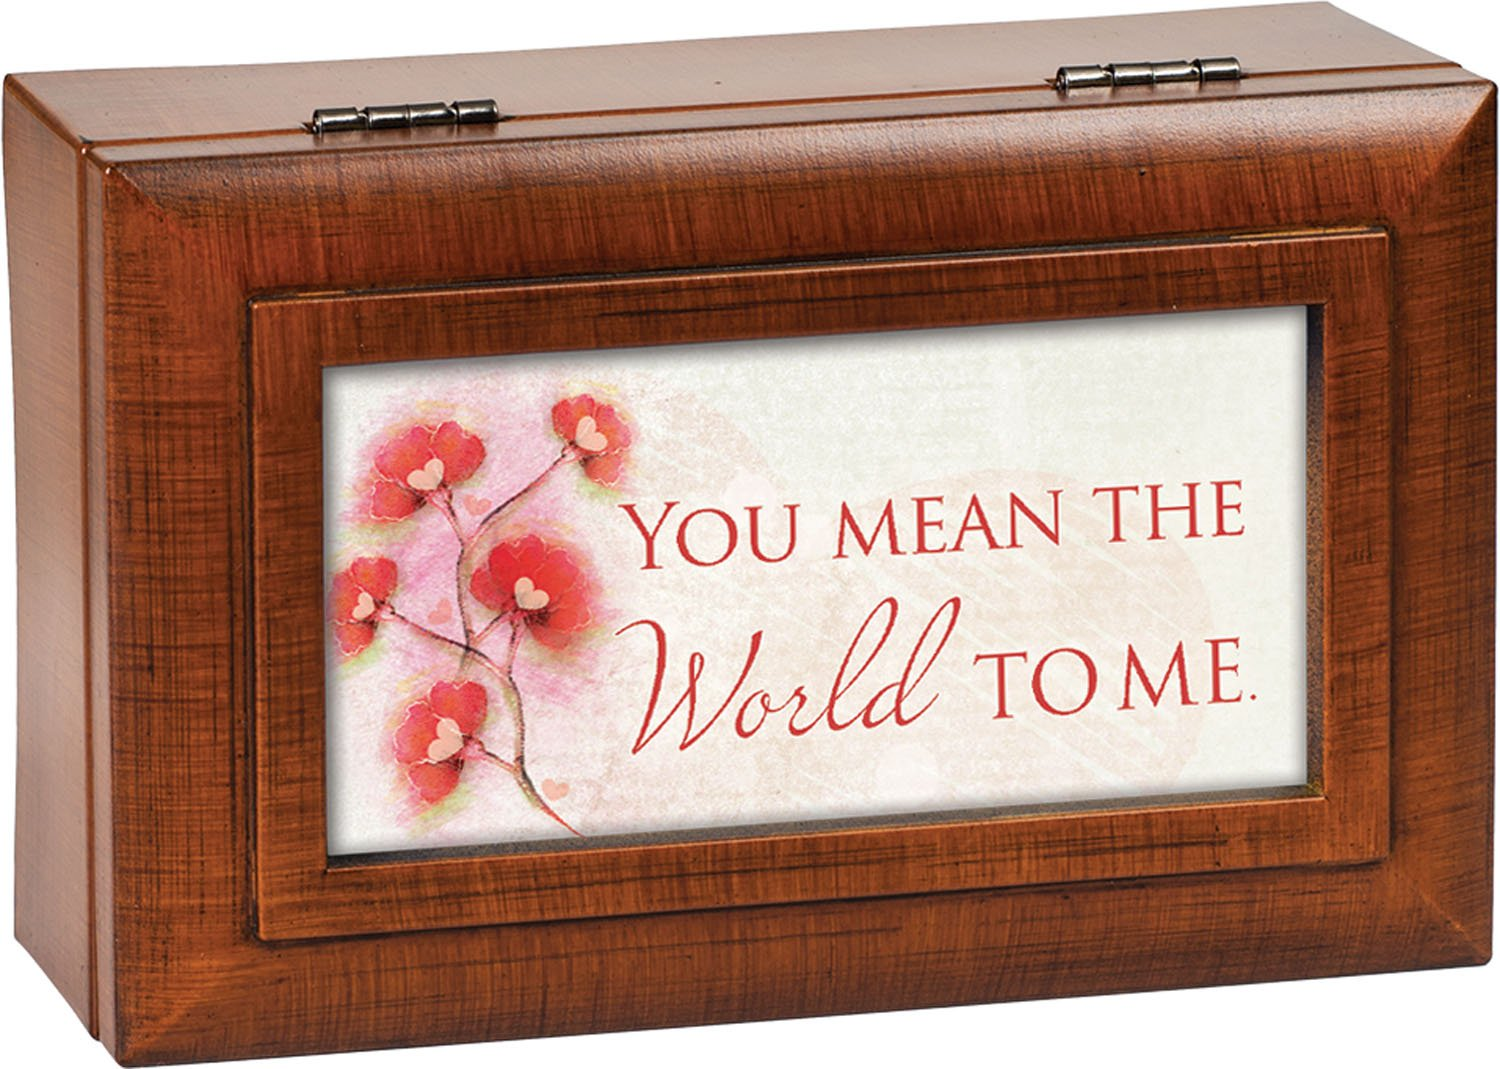 You Mean the World to Me Wood Finish Petite Jewelry Music Box Plays Wonderful World by Cottage Garden (Image #1)